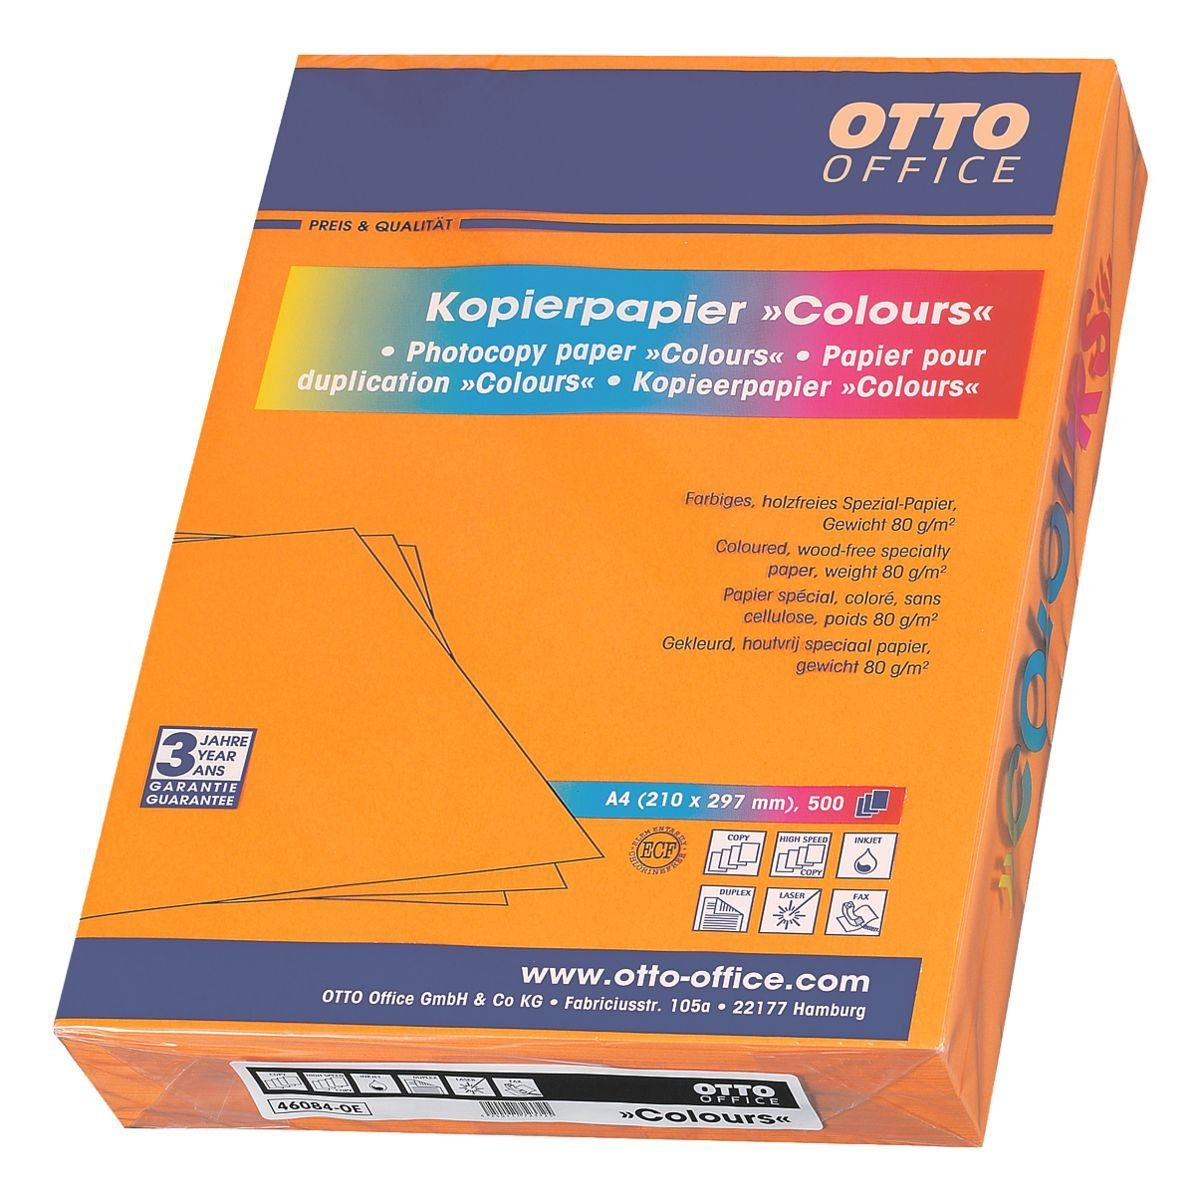 Farbiges Druckerpapier Ottooffice Standard Farbiges Papier Colours Otto